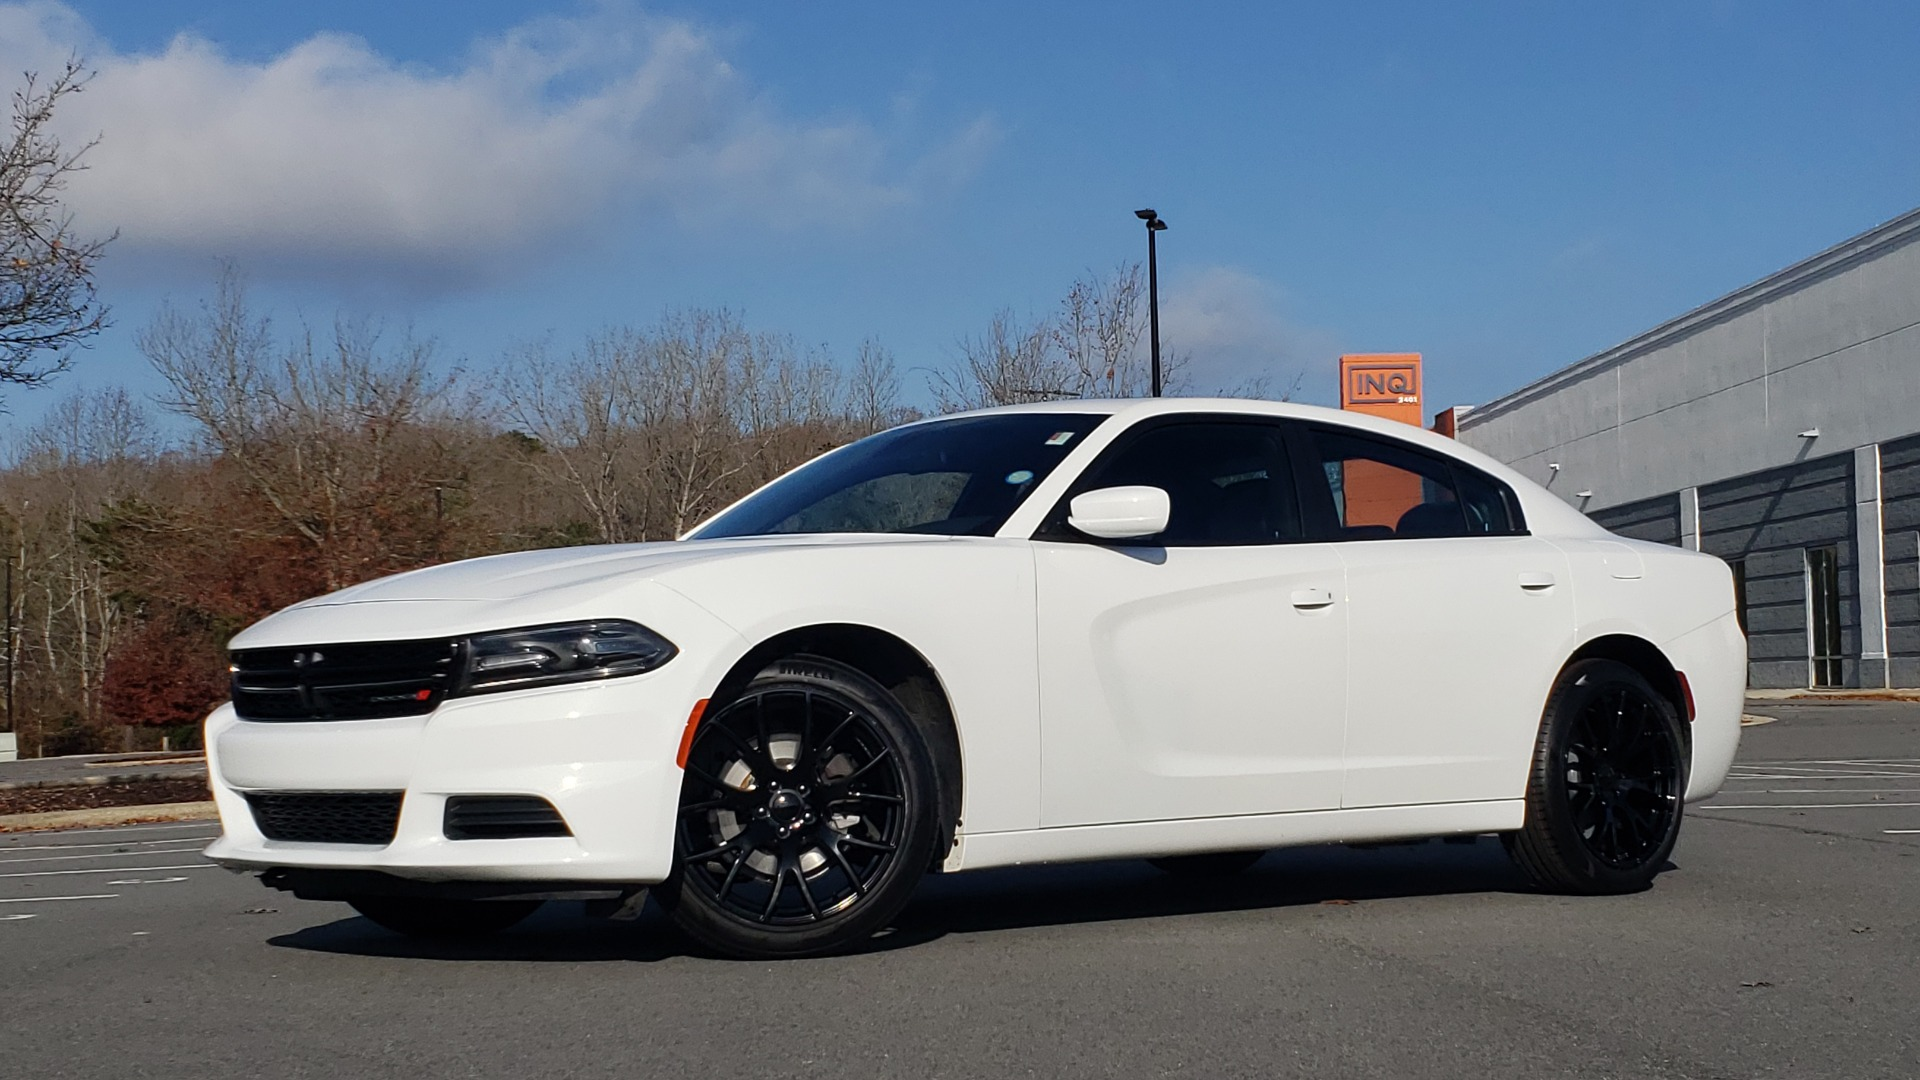 Used 2020 Dodge CHARGER SXT / RWD / V6 / 8-SPD AUTO / LTHR / HTD STS / SUNROOF / REARVIEW for sale $25,995 at Formula Imports in Charlotte NC 28227 3